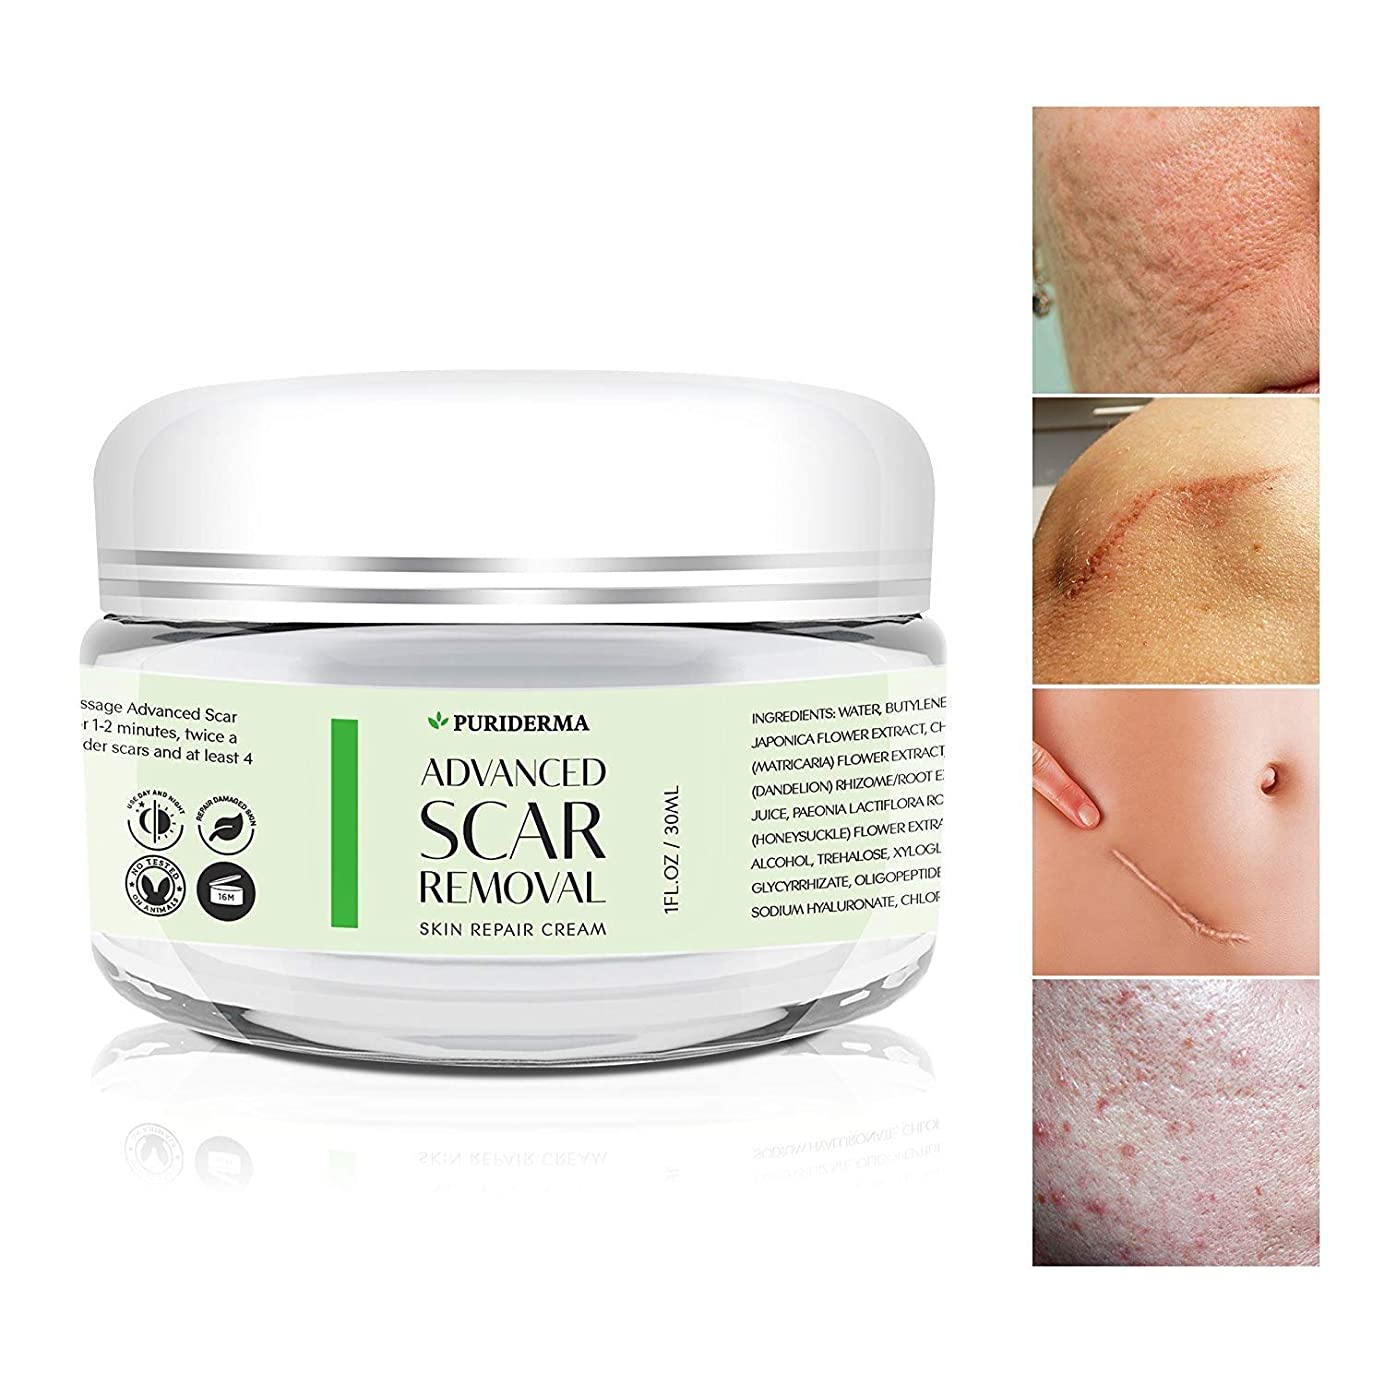 馬力配管バーターPuriderma 社 の Advanced Scar Removal Cream (30 ml) 妊娠線 や 傷跡 修復に Advanced Treatment for Face & Body, Old & New Scars from Cuts, Stretch Marks, C-Sections & Surgeries - With Natural Herbal Extracts Formula -